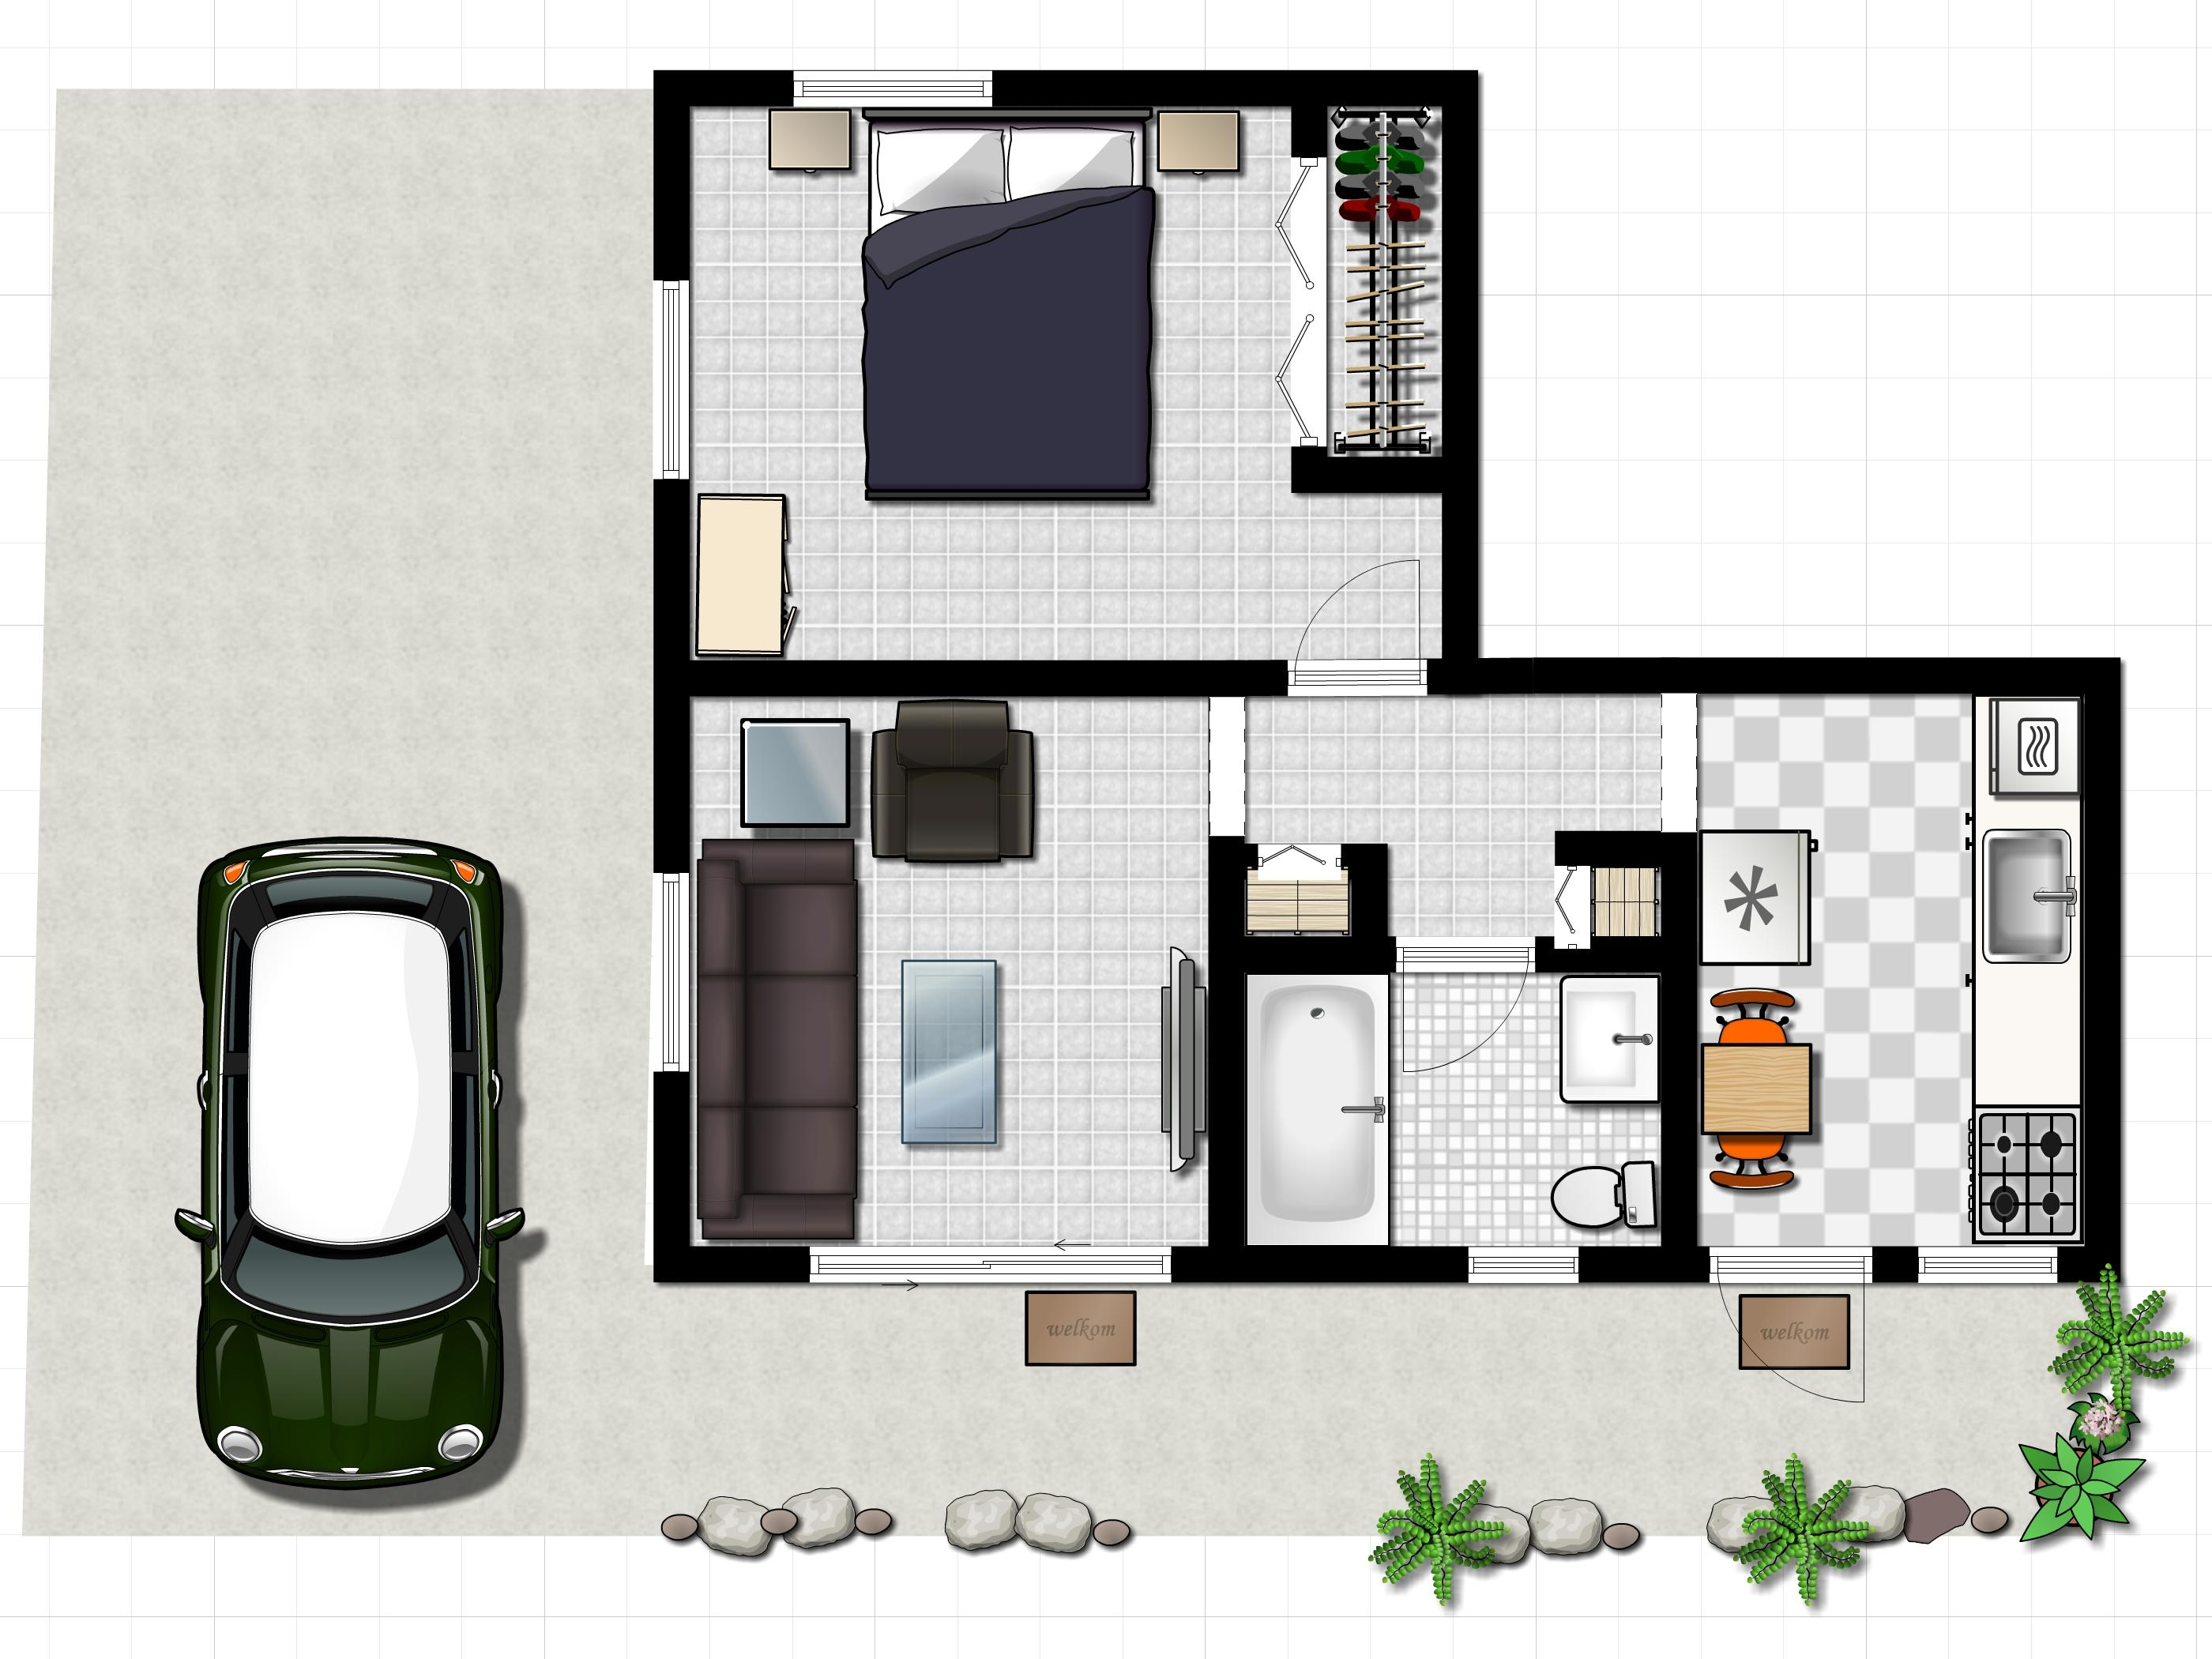 1f WAR006 floor plan